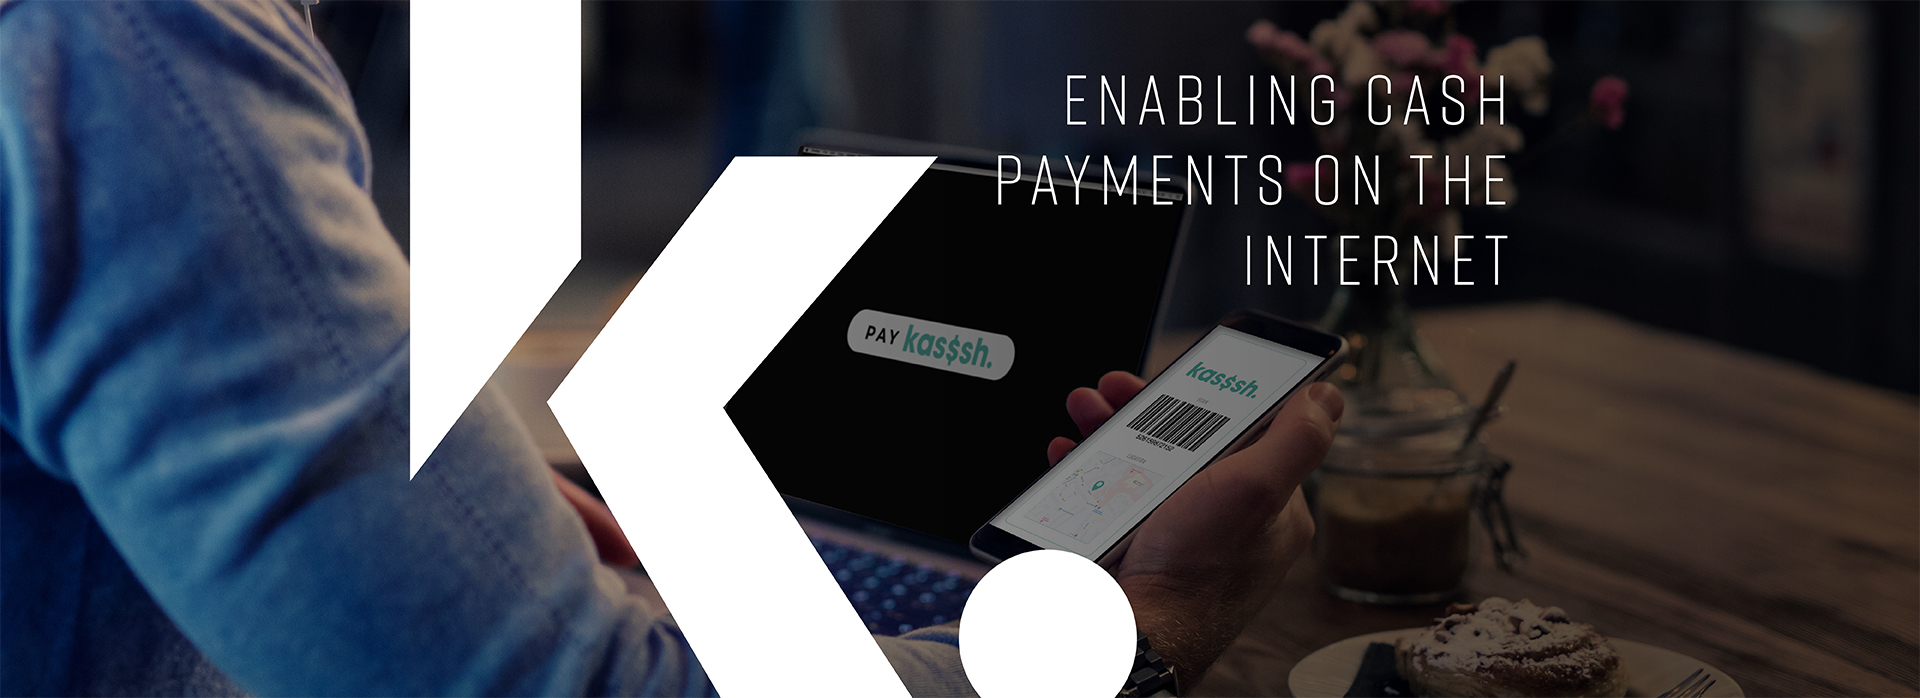 kasssh enabling payments